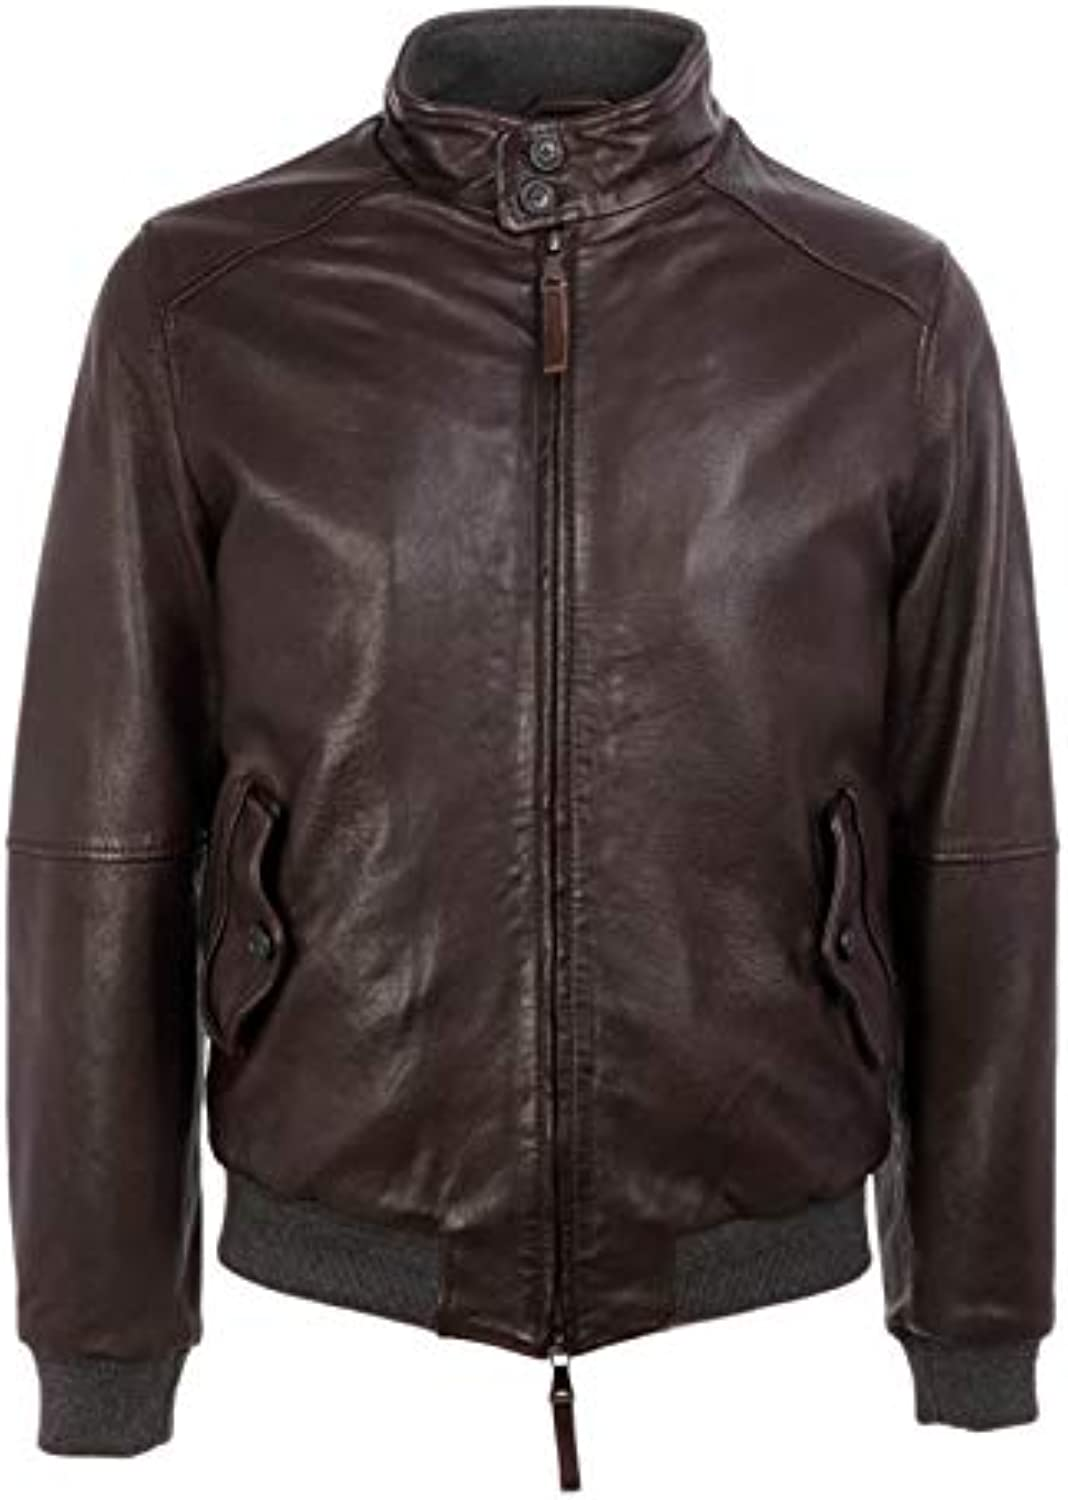 THE JACK Outerwear LEATHERS Giacca Outerwear JACK Uomo EMBO06 Pelle  Marronee 1879ec 2d3242e5996